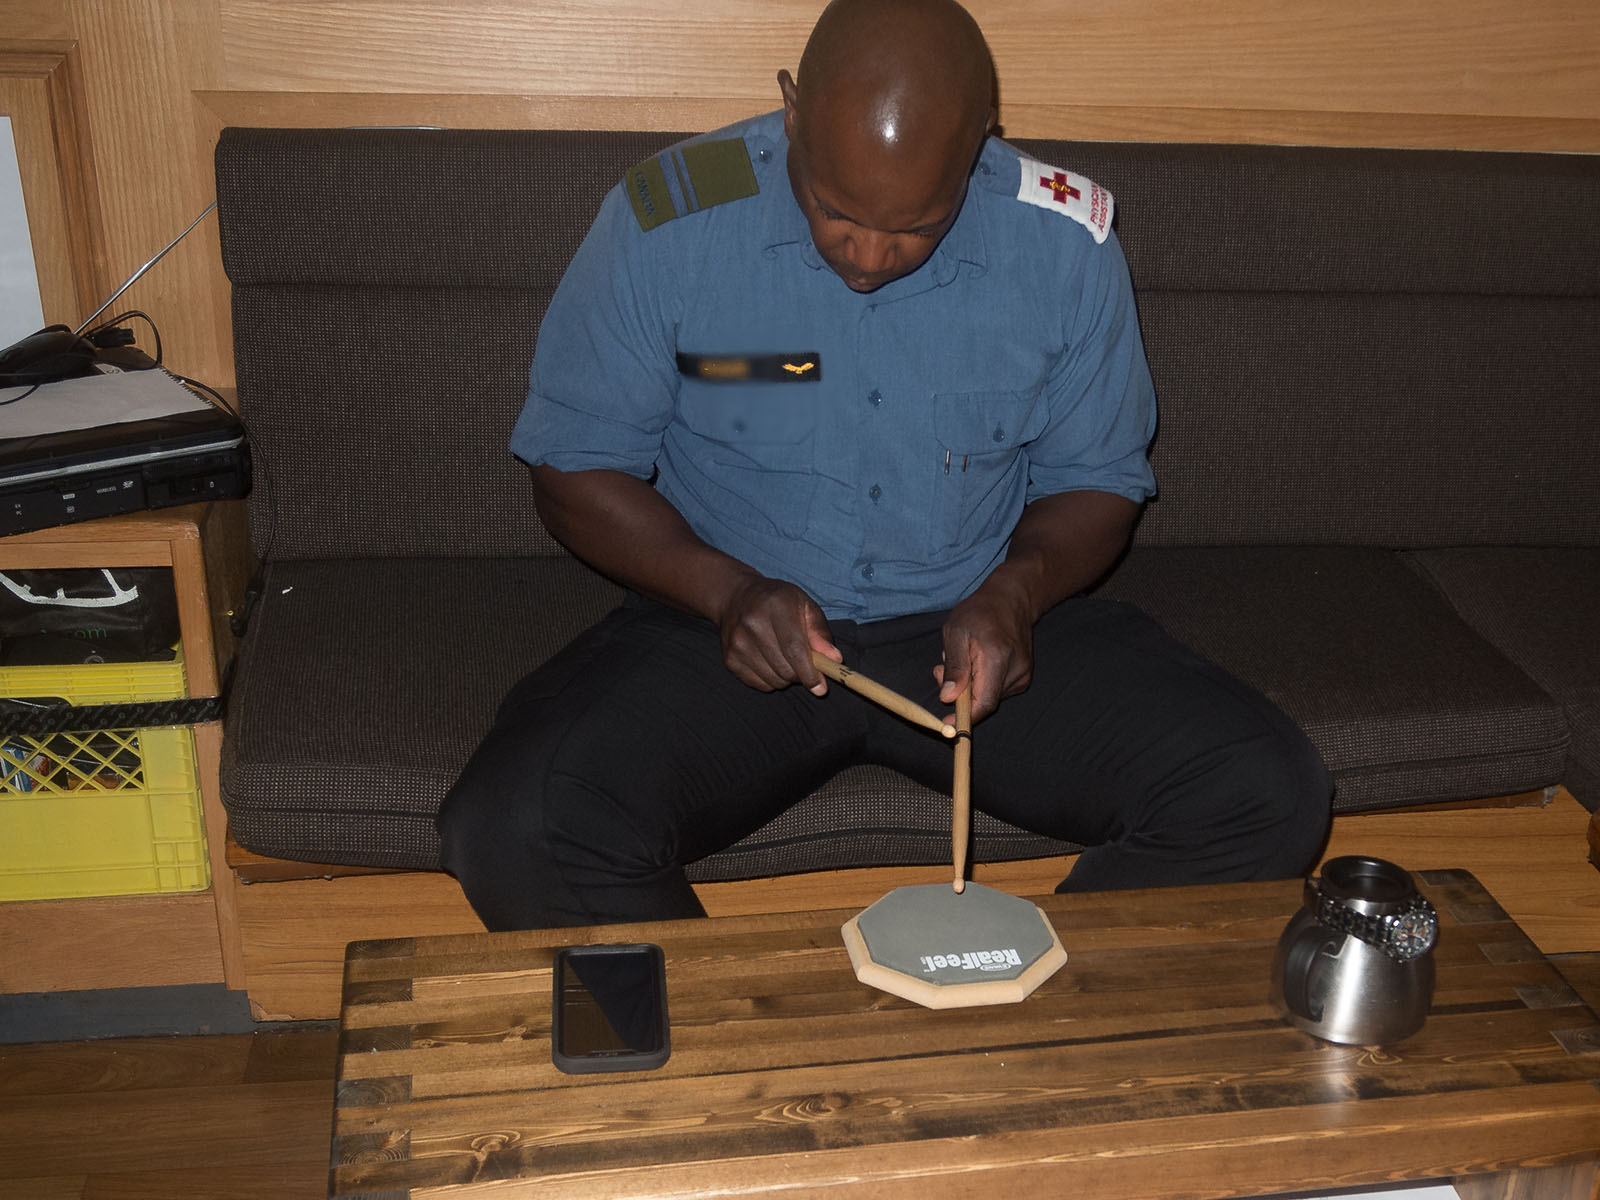 The Physician's Assistant in HMCS NANAIMO works on learning to drum between patients on October 29, 2018 during OPERATION CARIBBE.